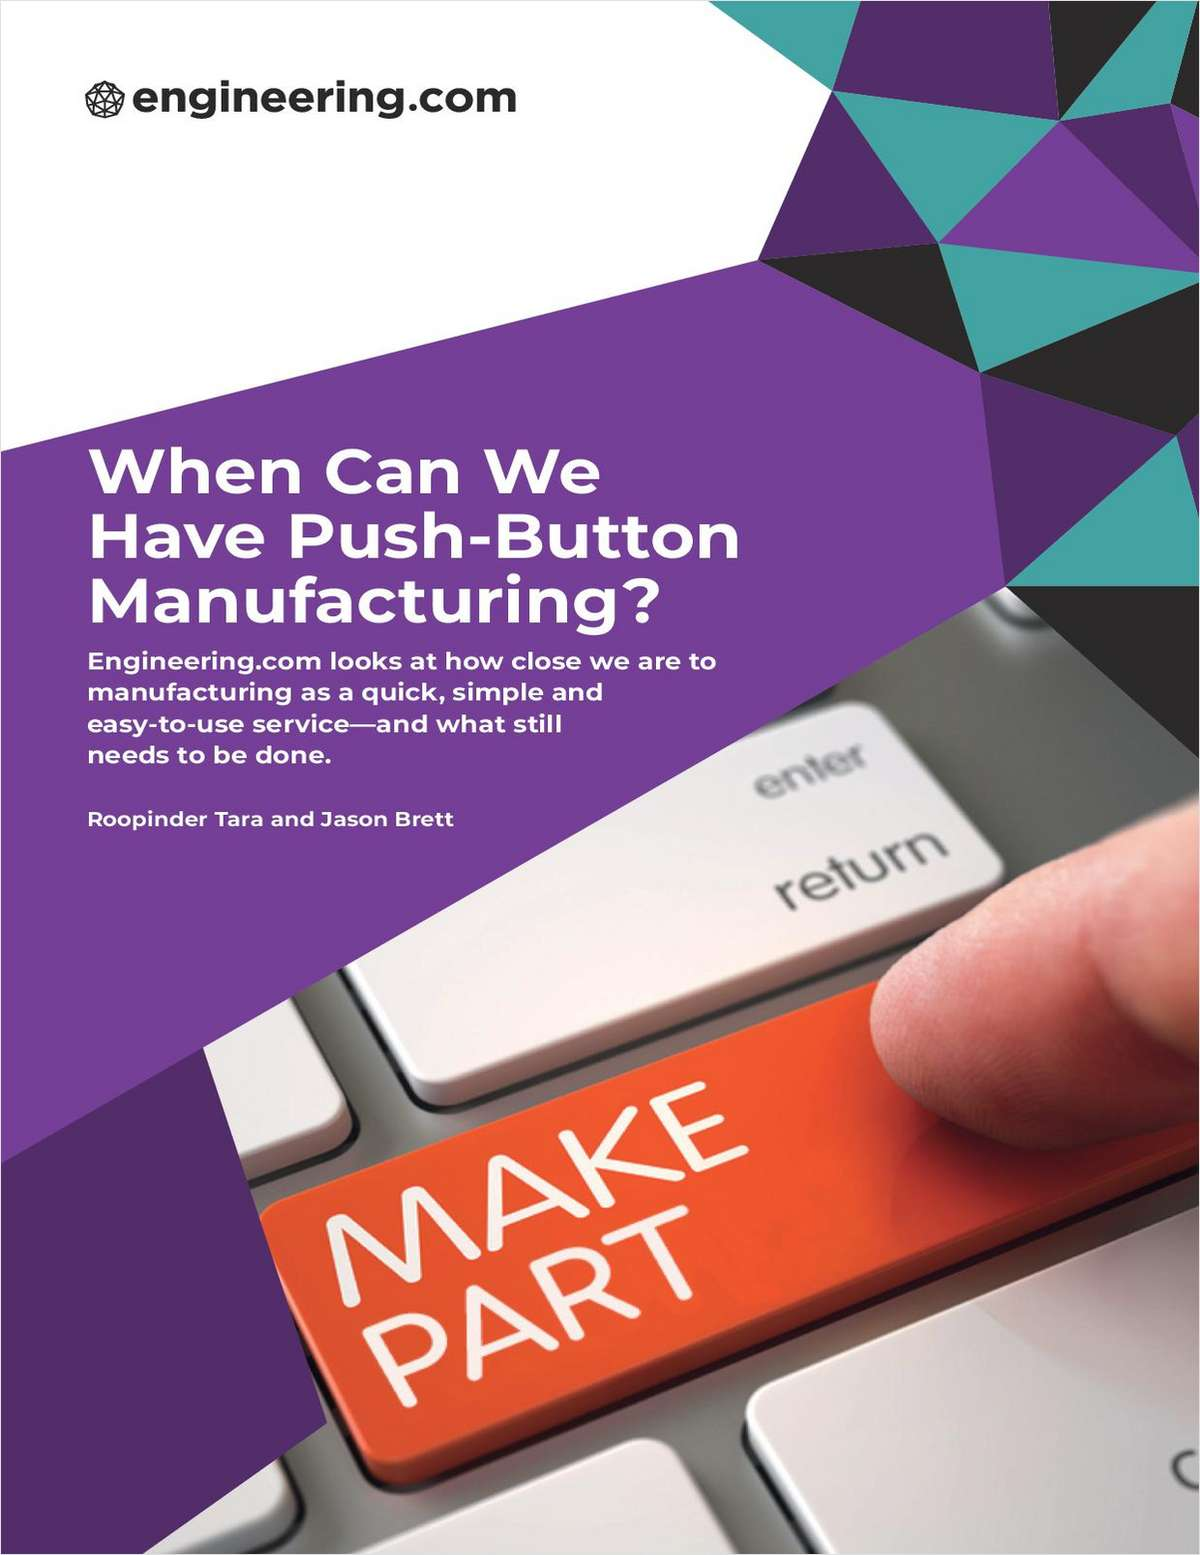 When Can We Have Push-Button Manufacturing?